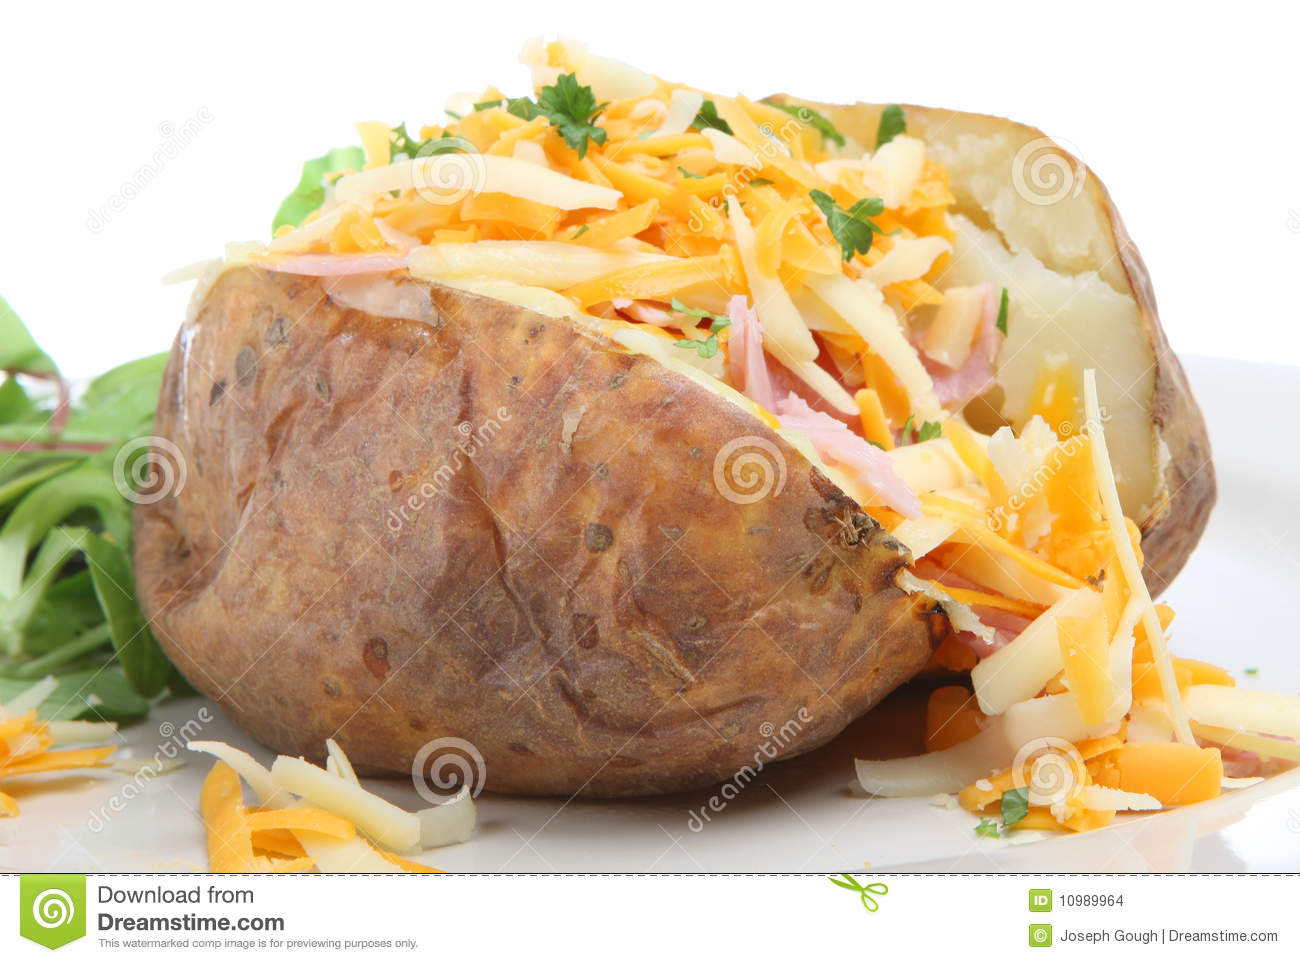 Baked Potato Clipart Salad Clipart Mashed Potato Clipart Baked Potato